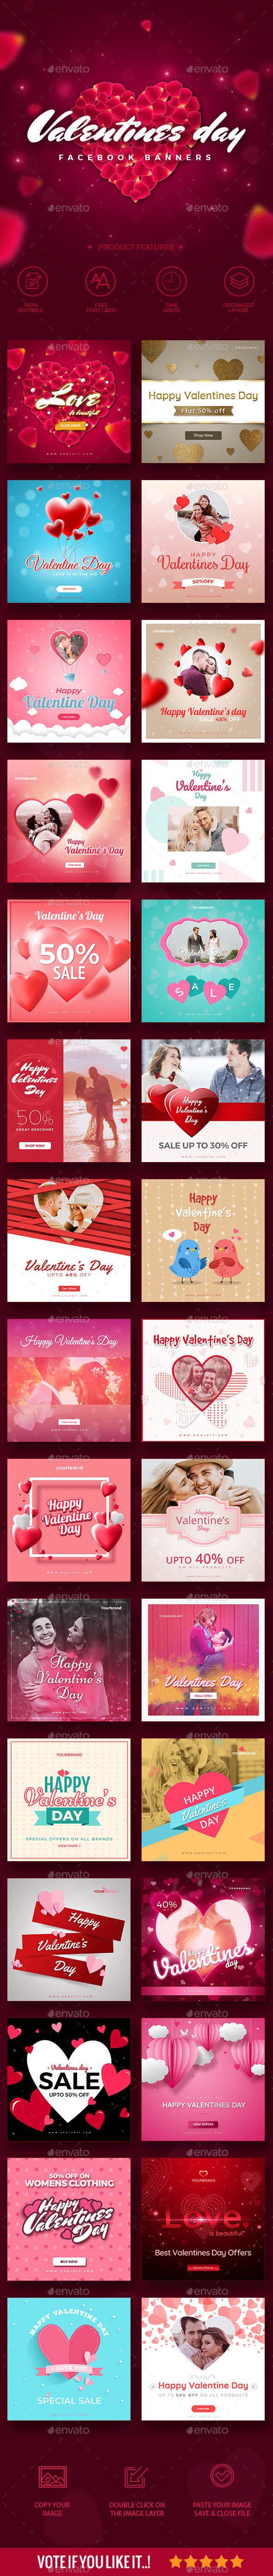 30 Valentines Day Instagram Promotion Banners - Social Media Web Elements